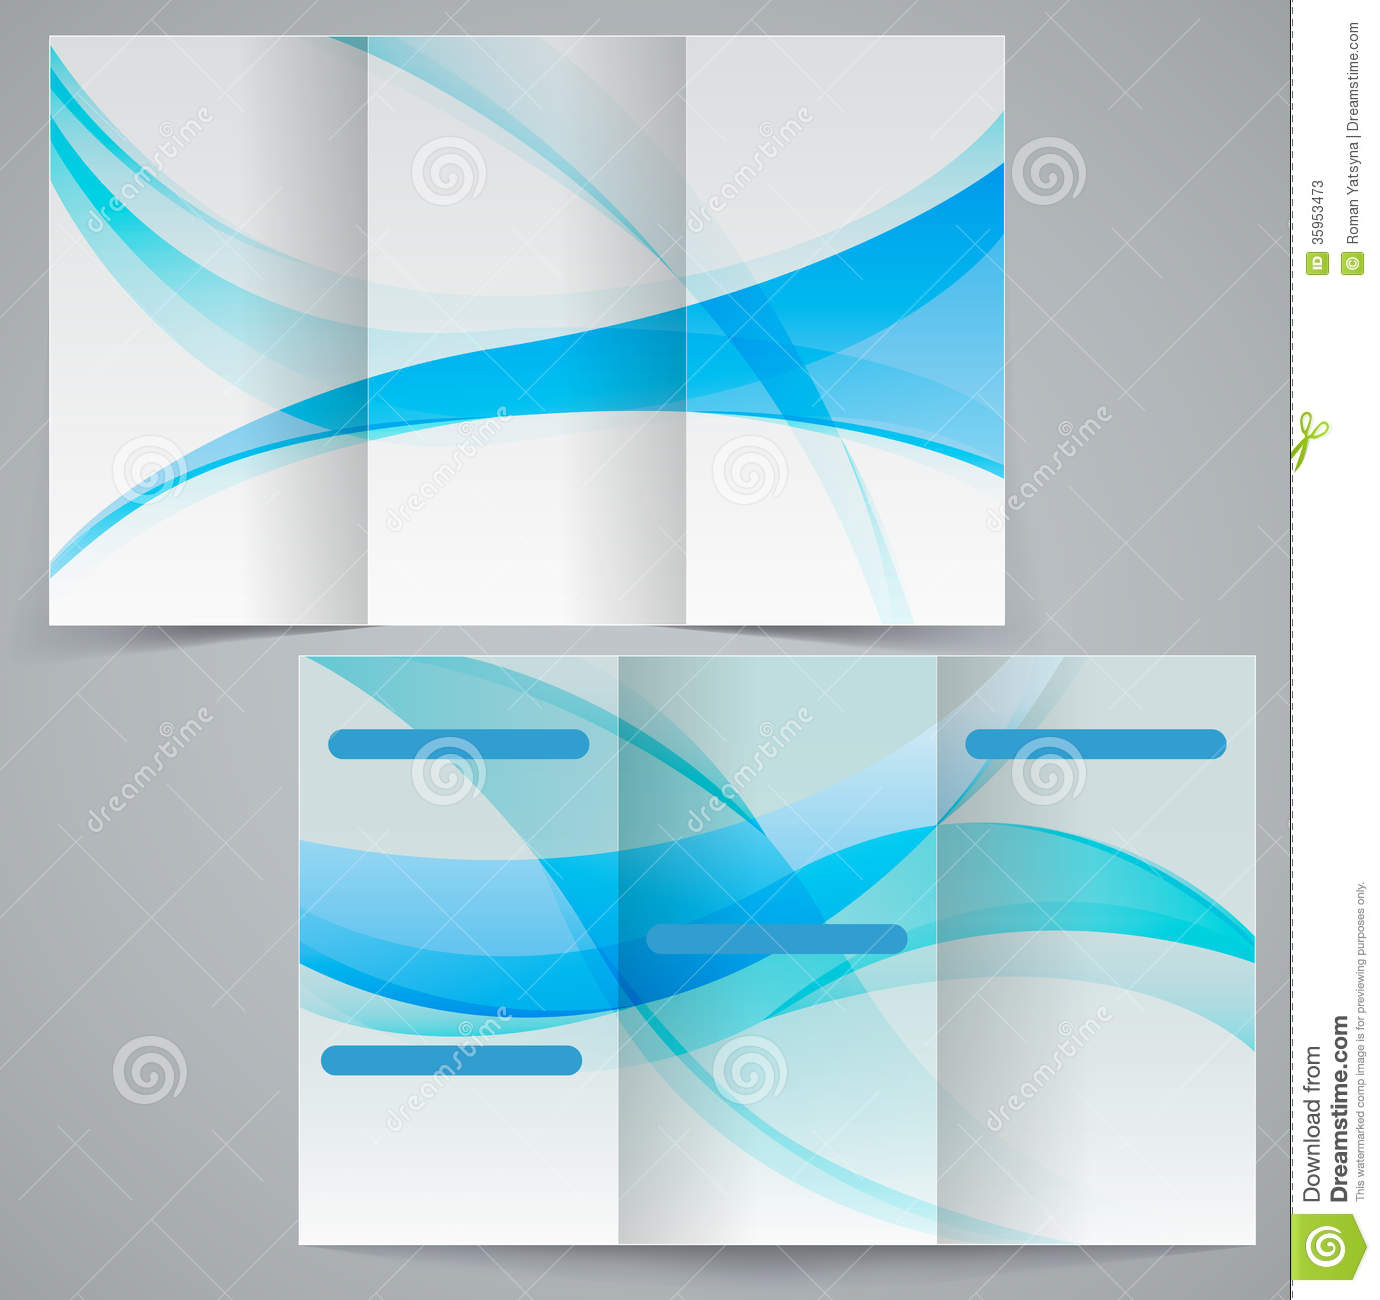 Tri fold business brochure template vector blue d stock for Templates for brochures